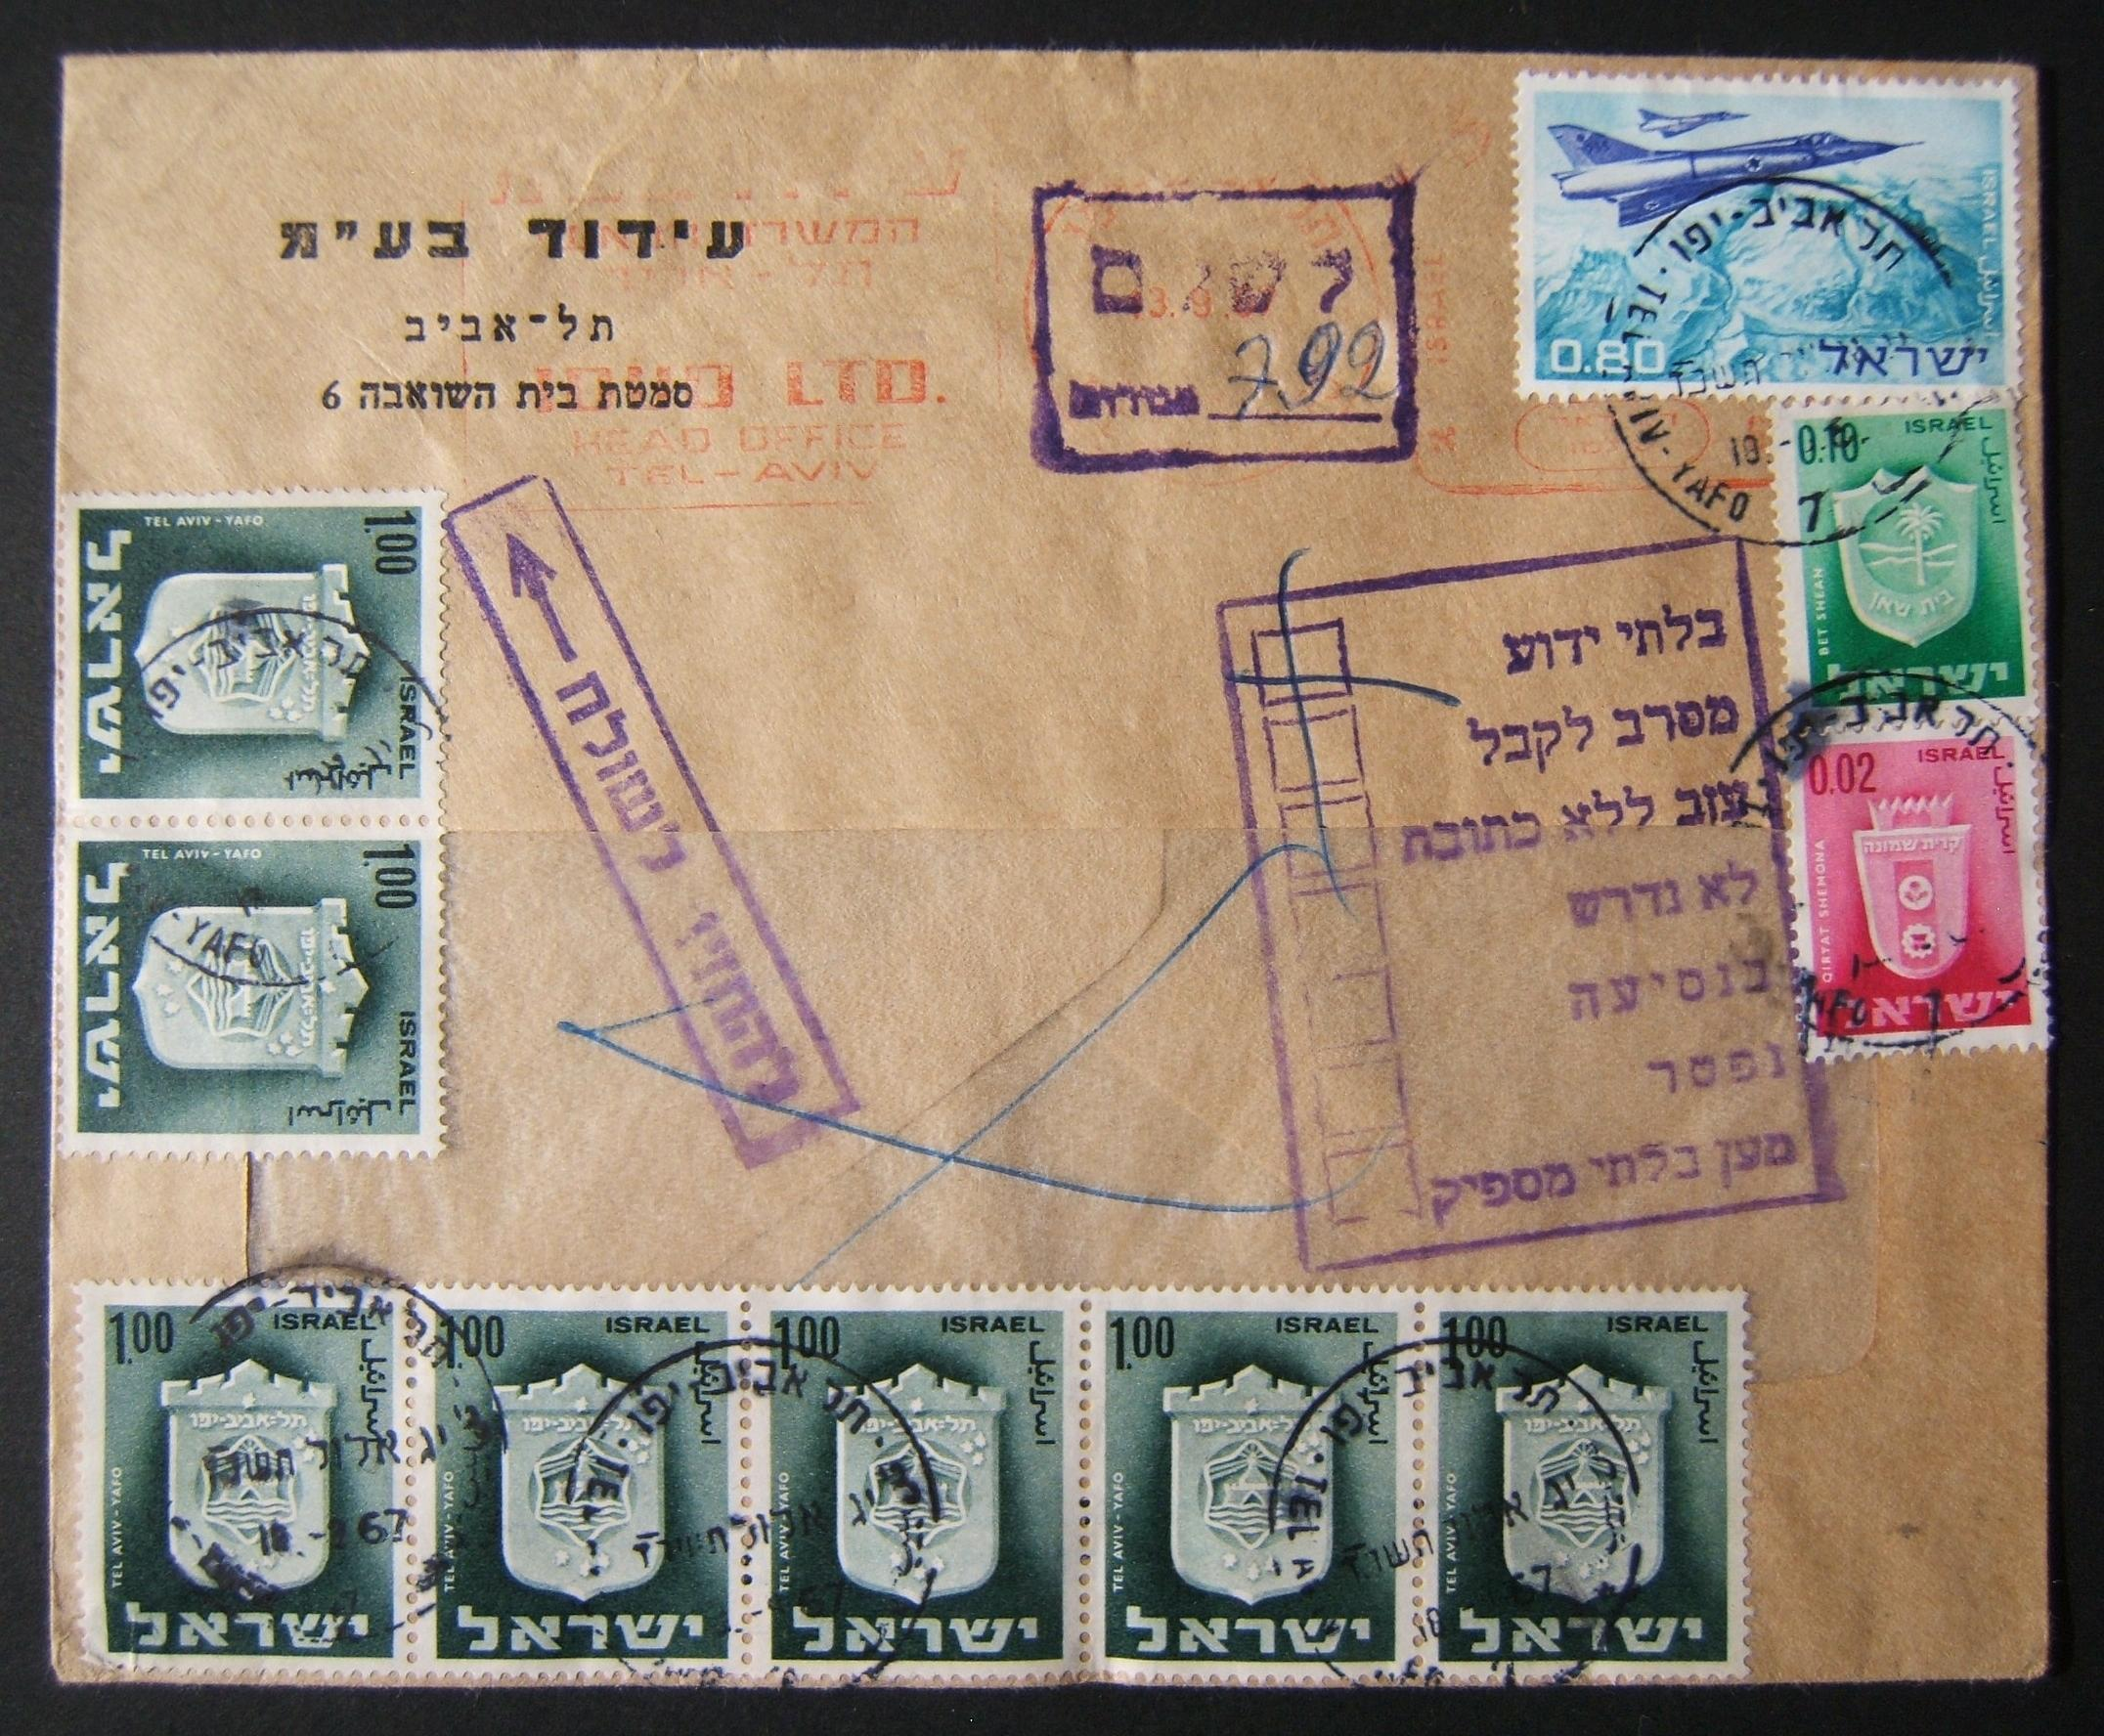 1967 domestic 'top of the pile' taxed franking: 13-9-67 pm comm. cv ex TLV franked by meter at DO-12 period 12 Ag rate, but returned to sender as address unknown (cachet); as cv pr